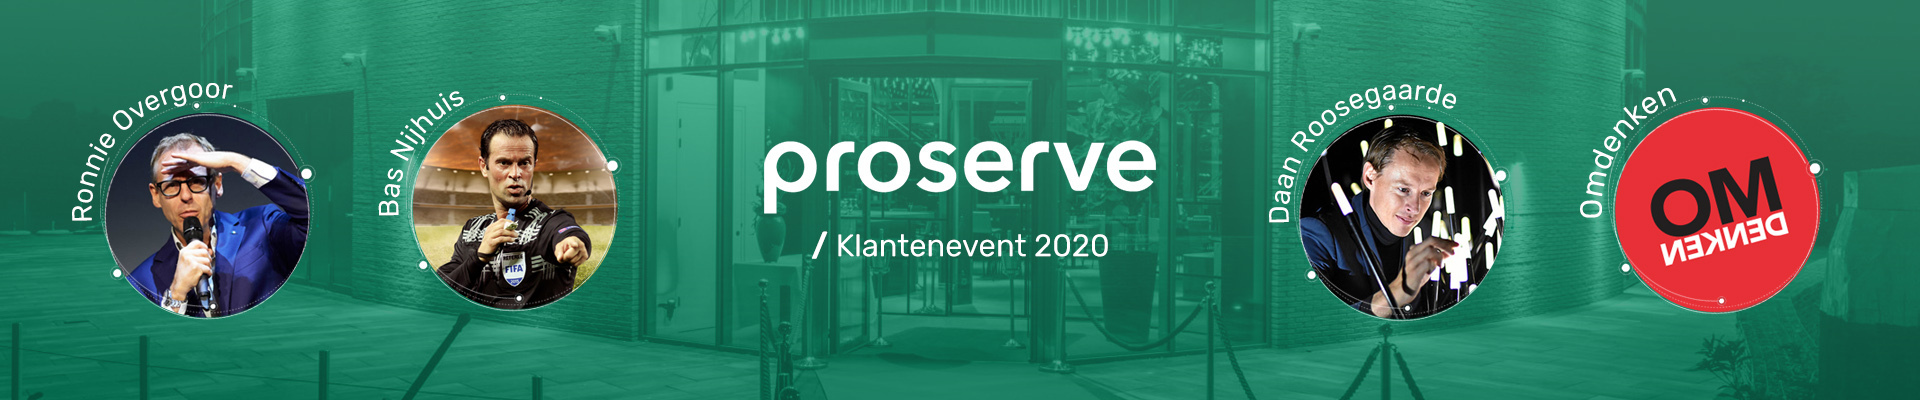 Proserve klantenevent 2020